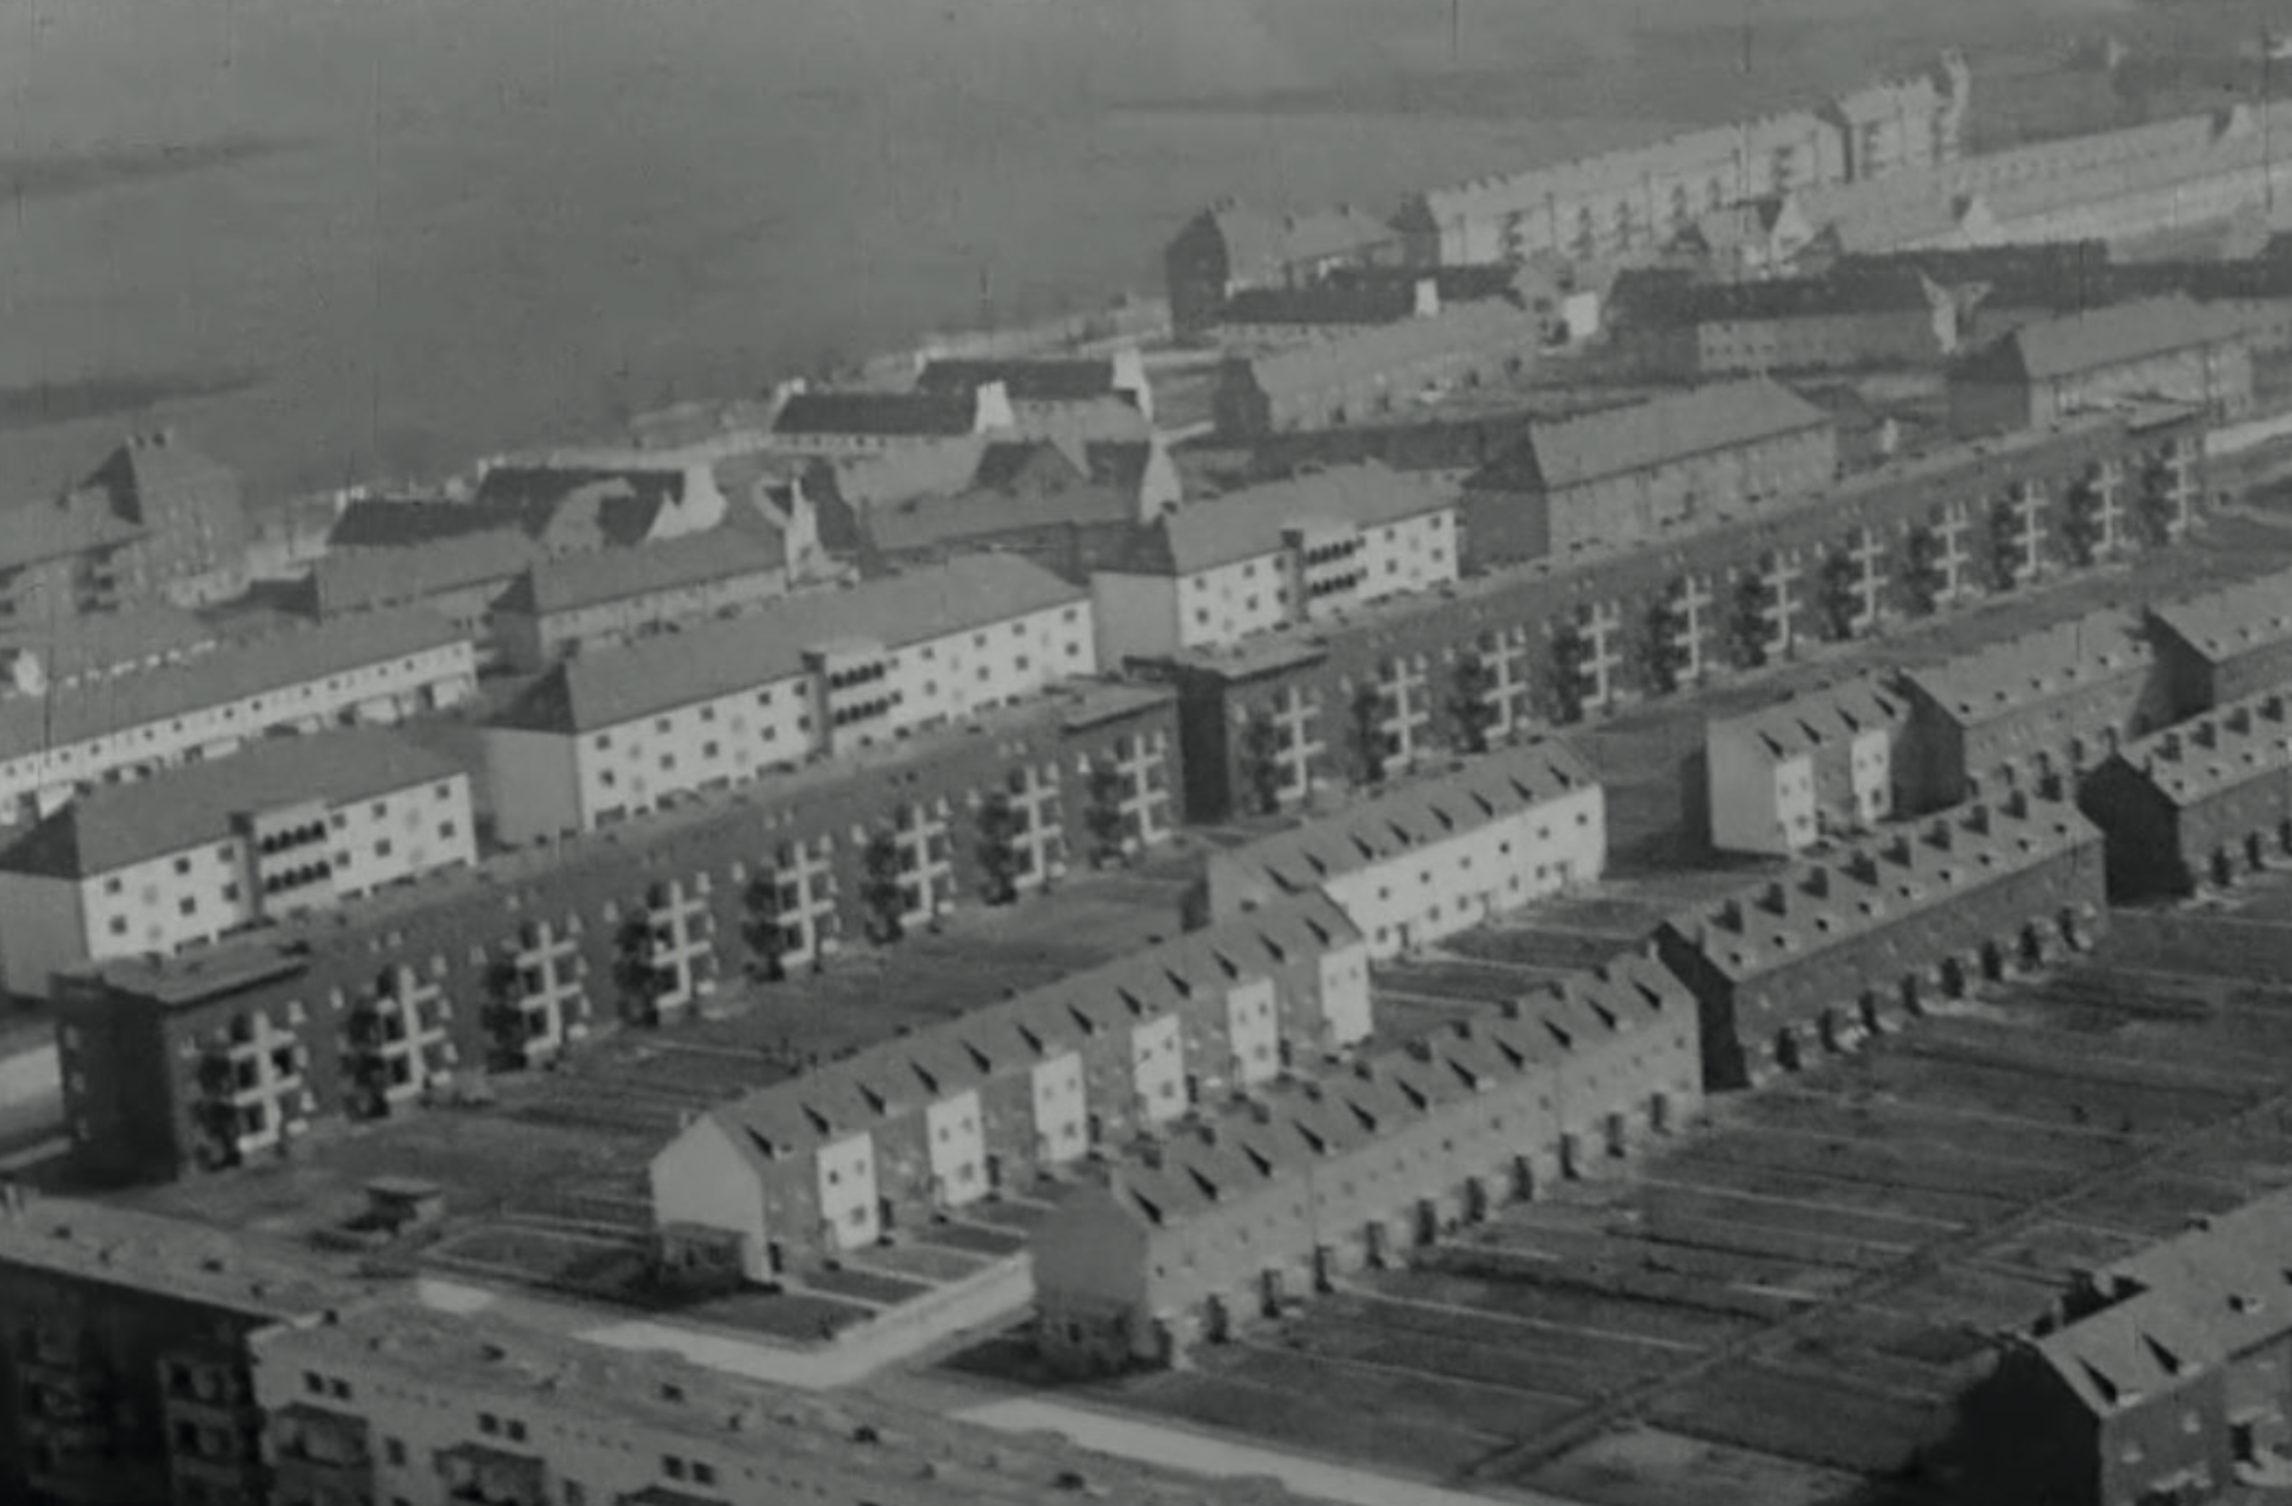 The building is no longer an autonomous artefact, but a building block for the street which is part of the overall settlement structure. Image from: How to live healthily and economically? Film series in four episodes by Walter Gropius and the Humboldt film GMBH, 1926.